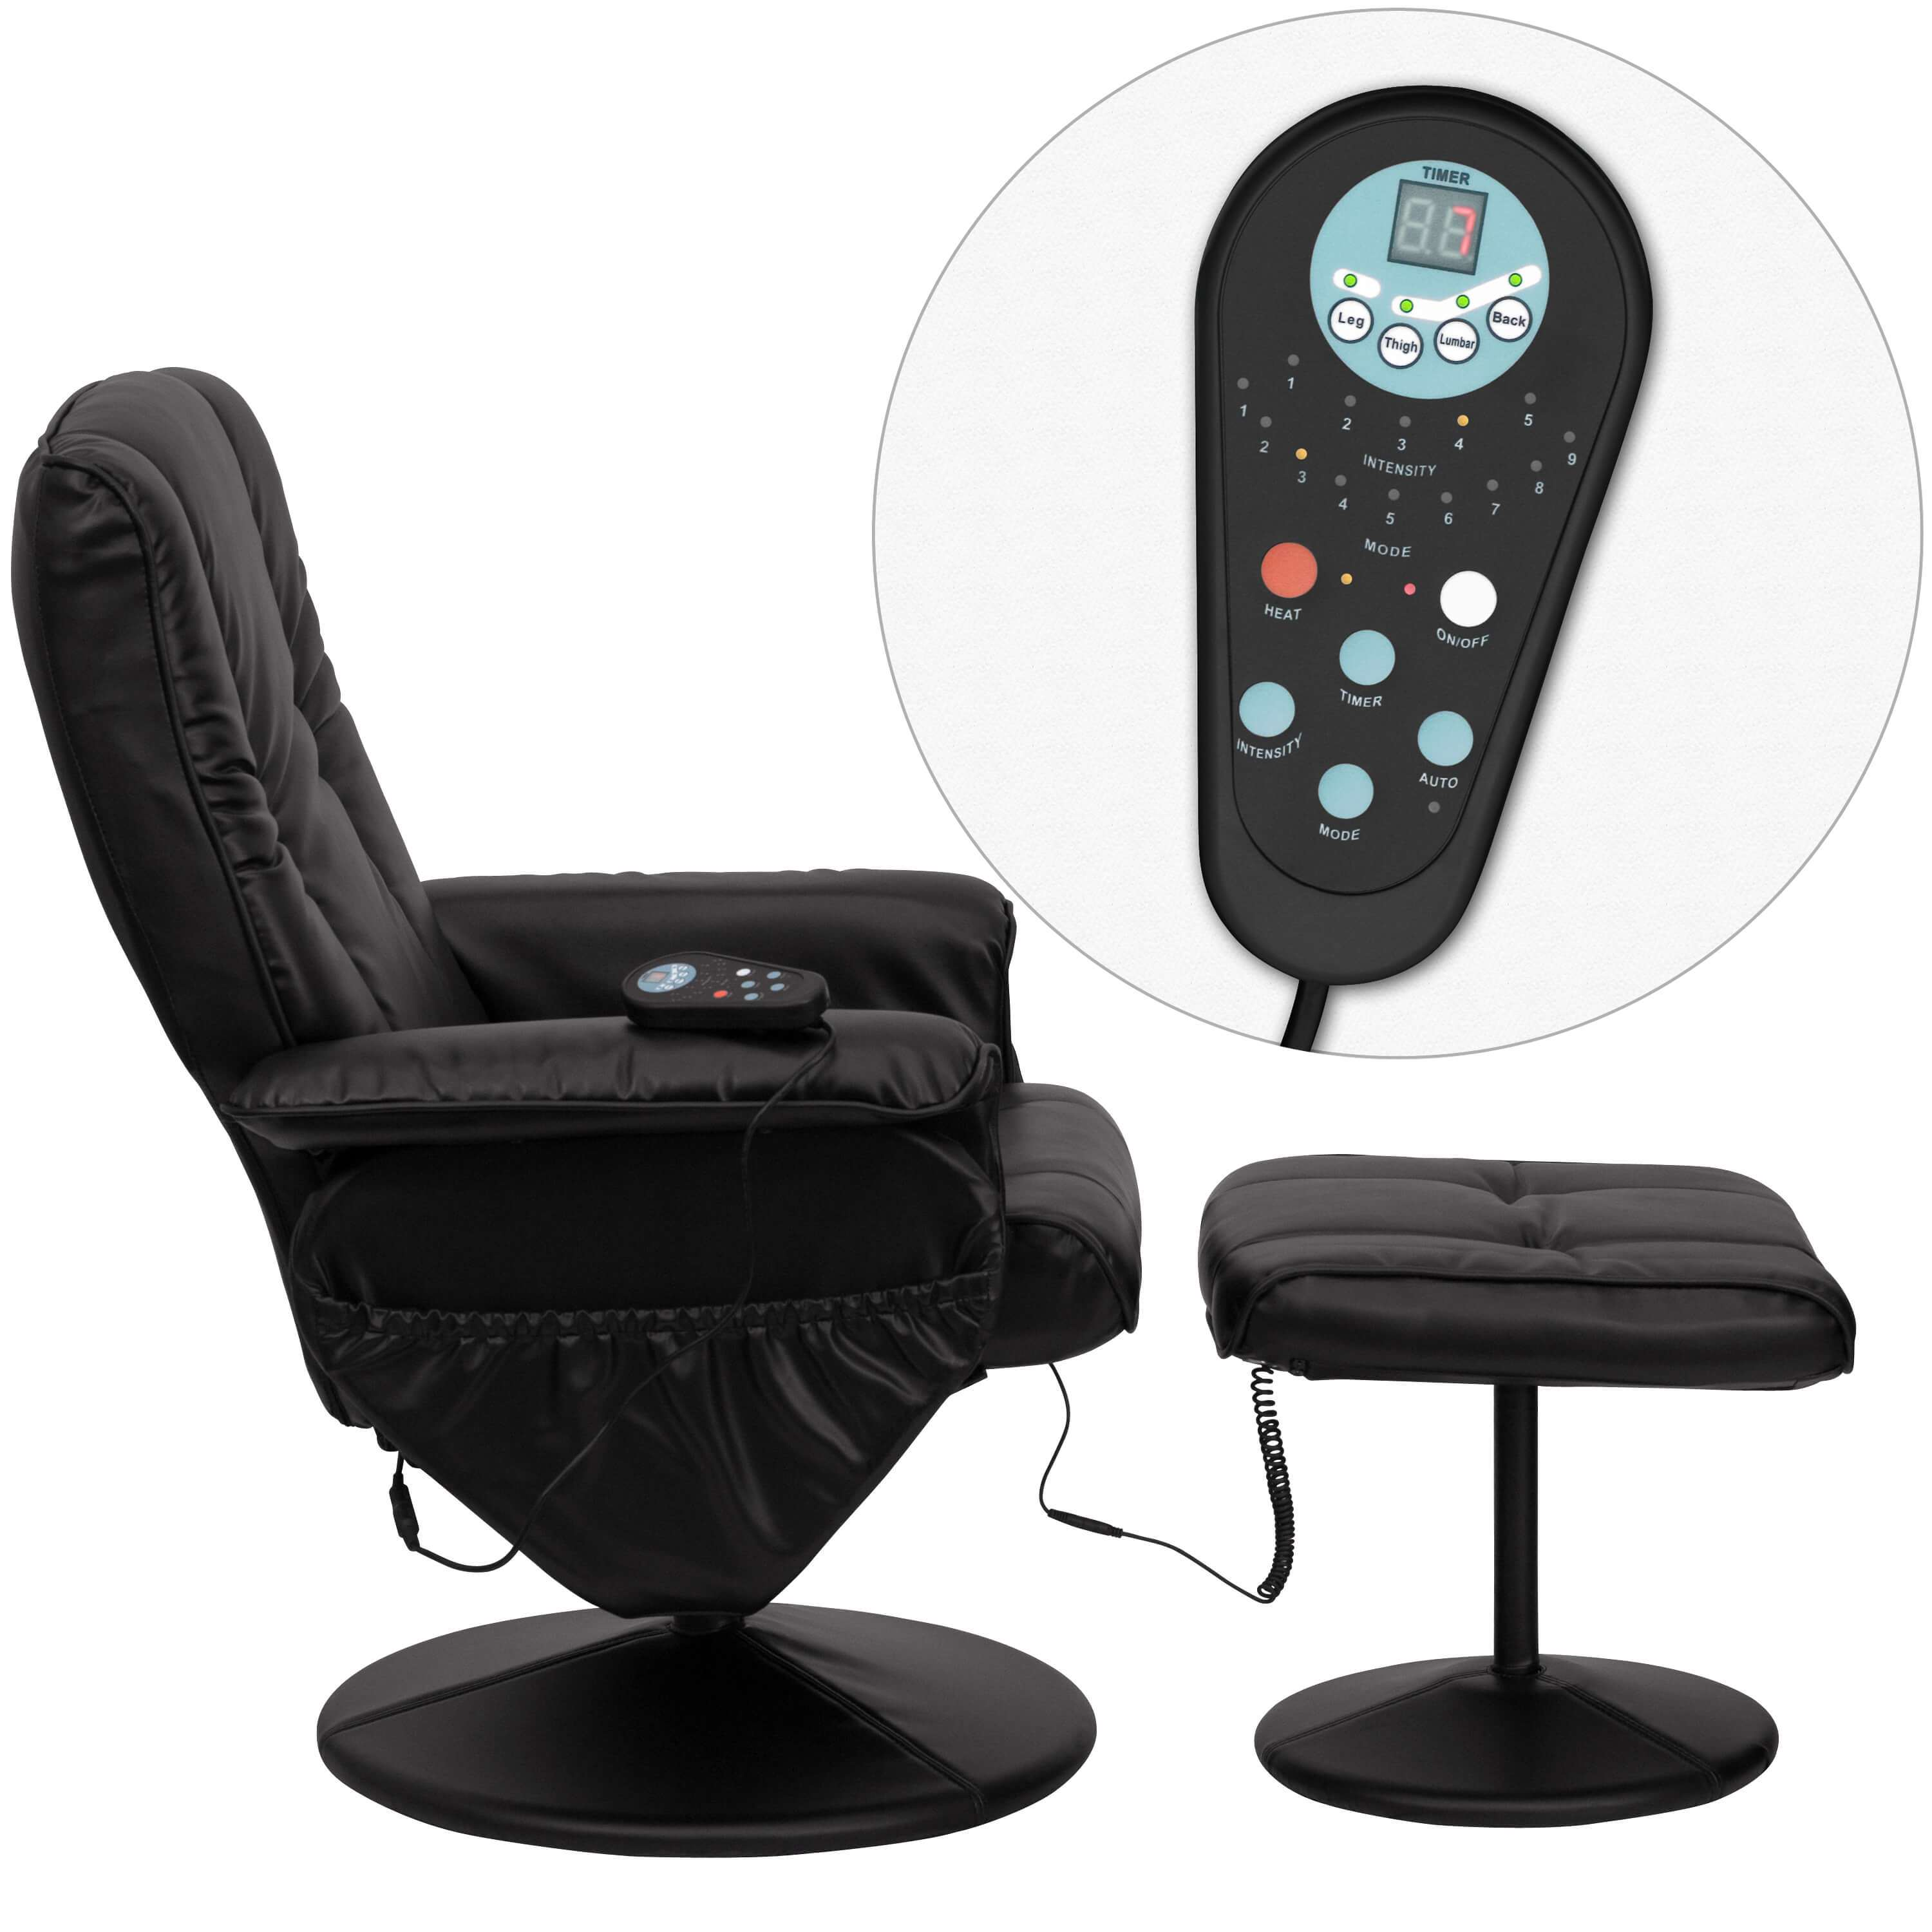 Recliner massage chair remote view